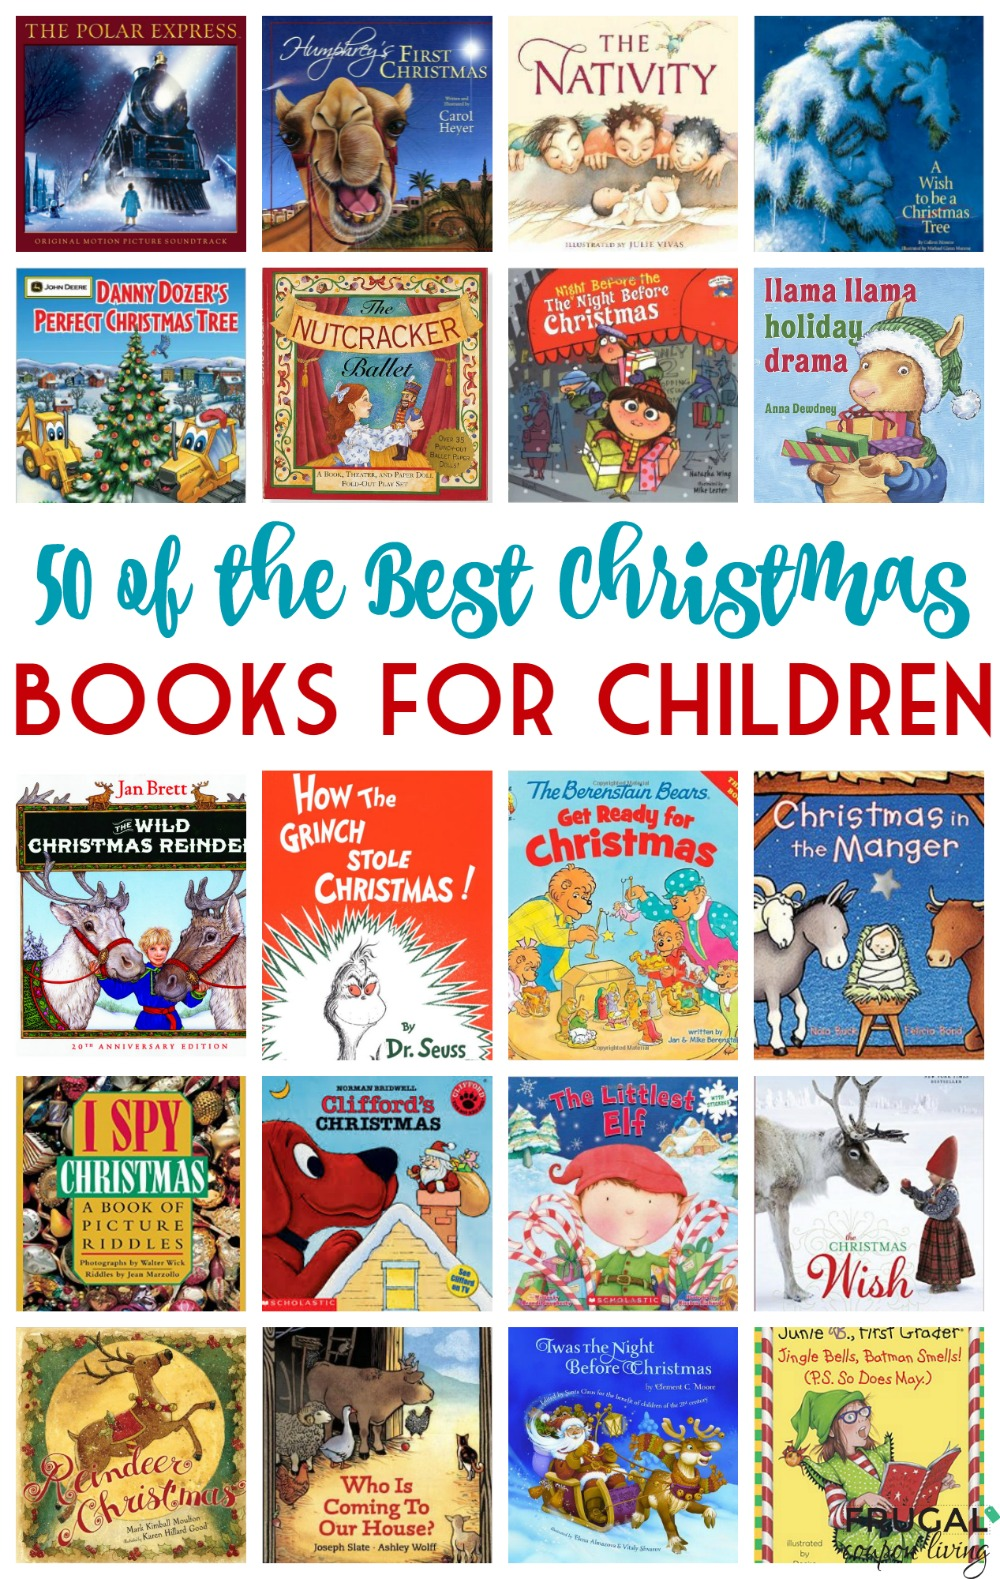 50 best childrens books frugal coupon living - Best Christmas Books For Kids